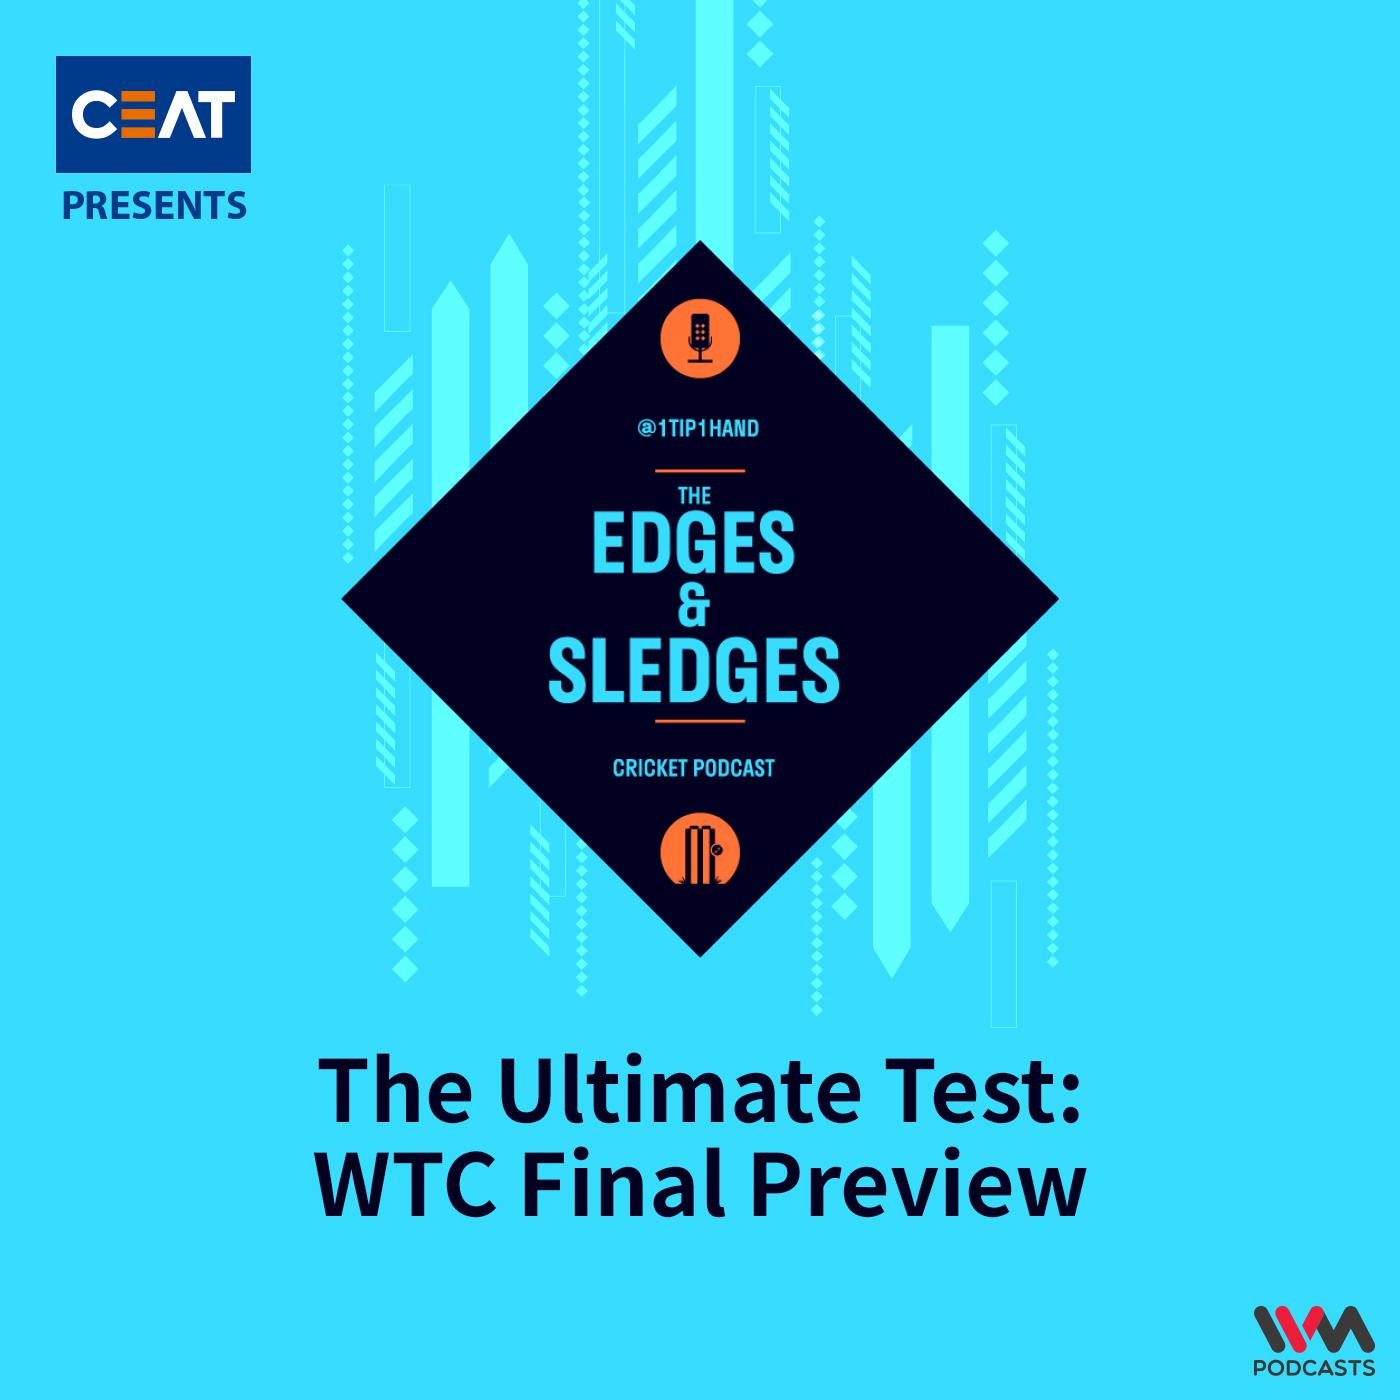 Ep. 179: The Ultimate Test: WTC Final Preview